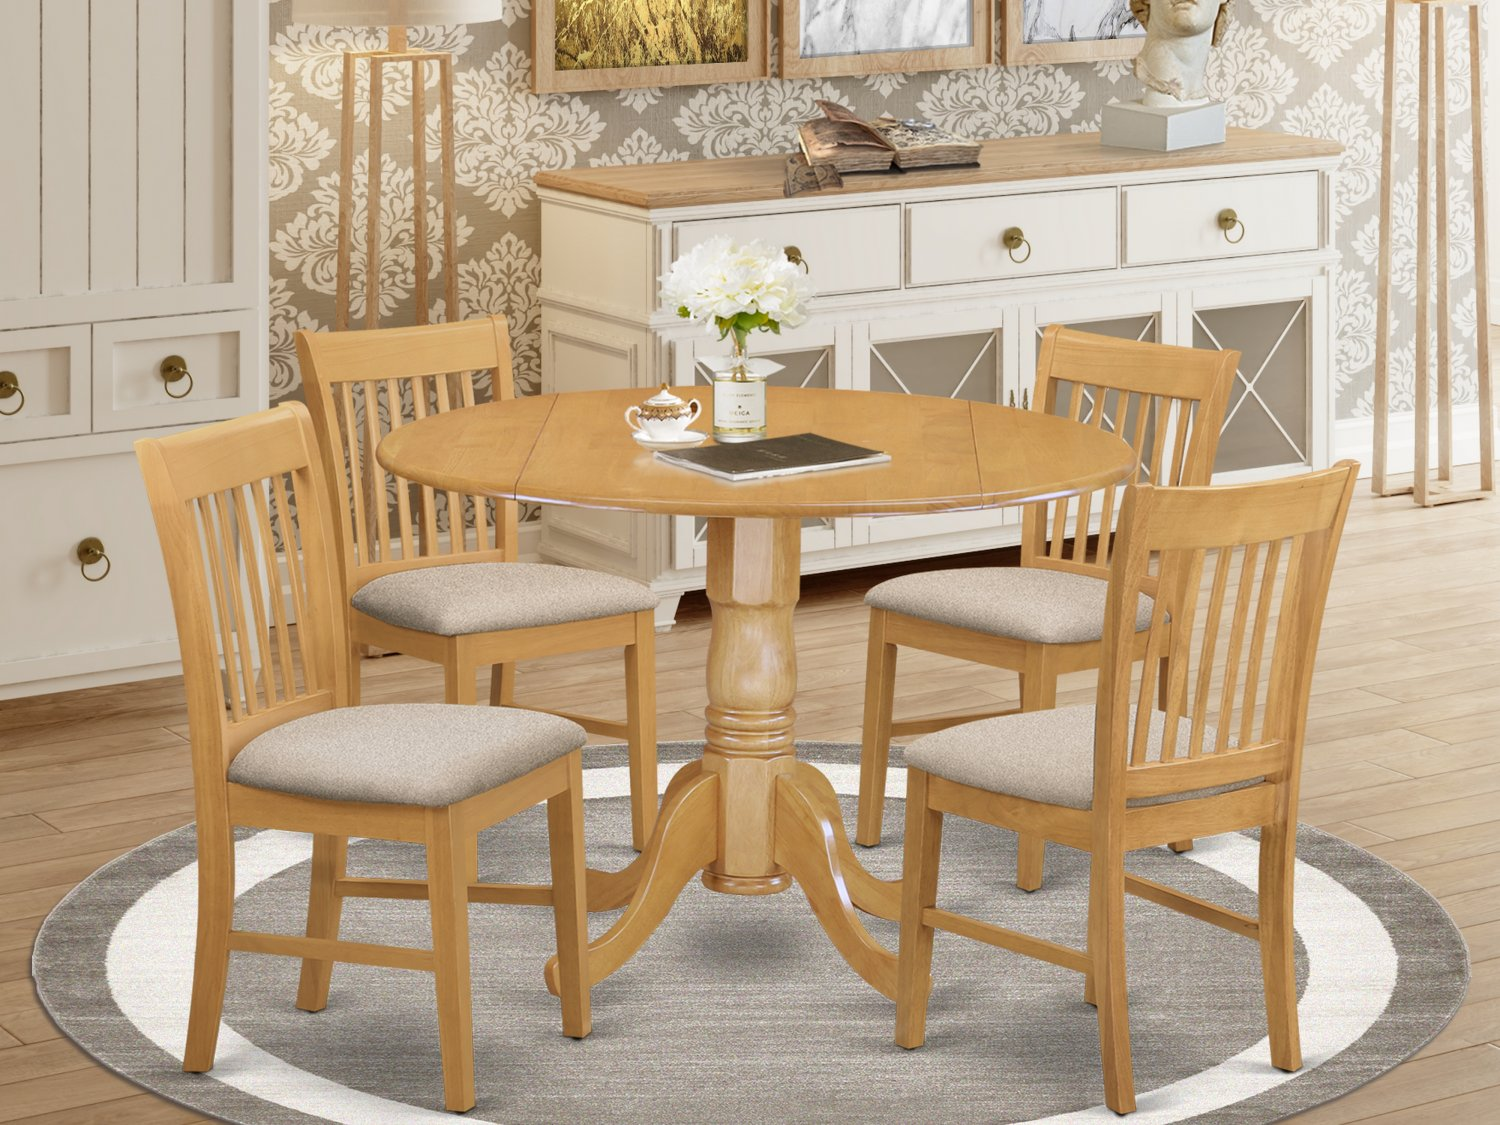 5PC dinette kitchen set round table drop leaf + 4 cushion seat chairs in OAK. SKU: DNO5-OAK-C